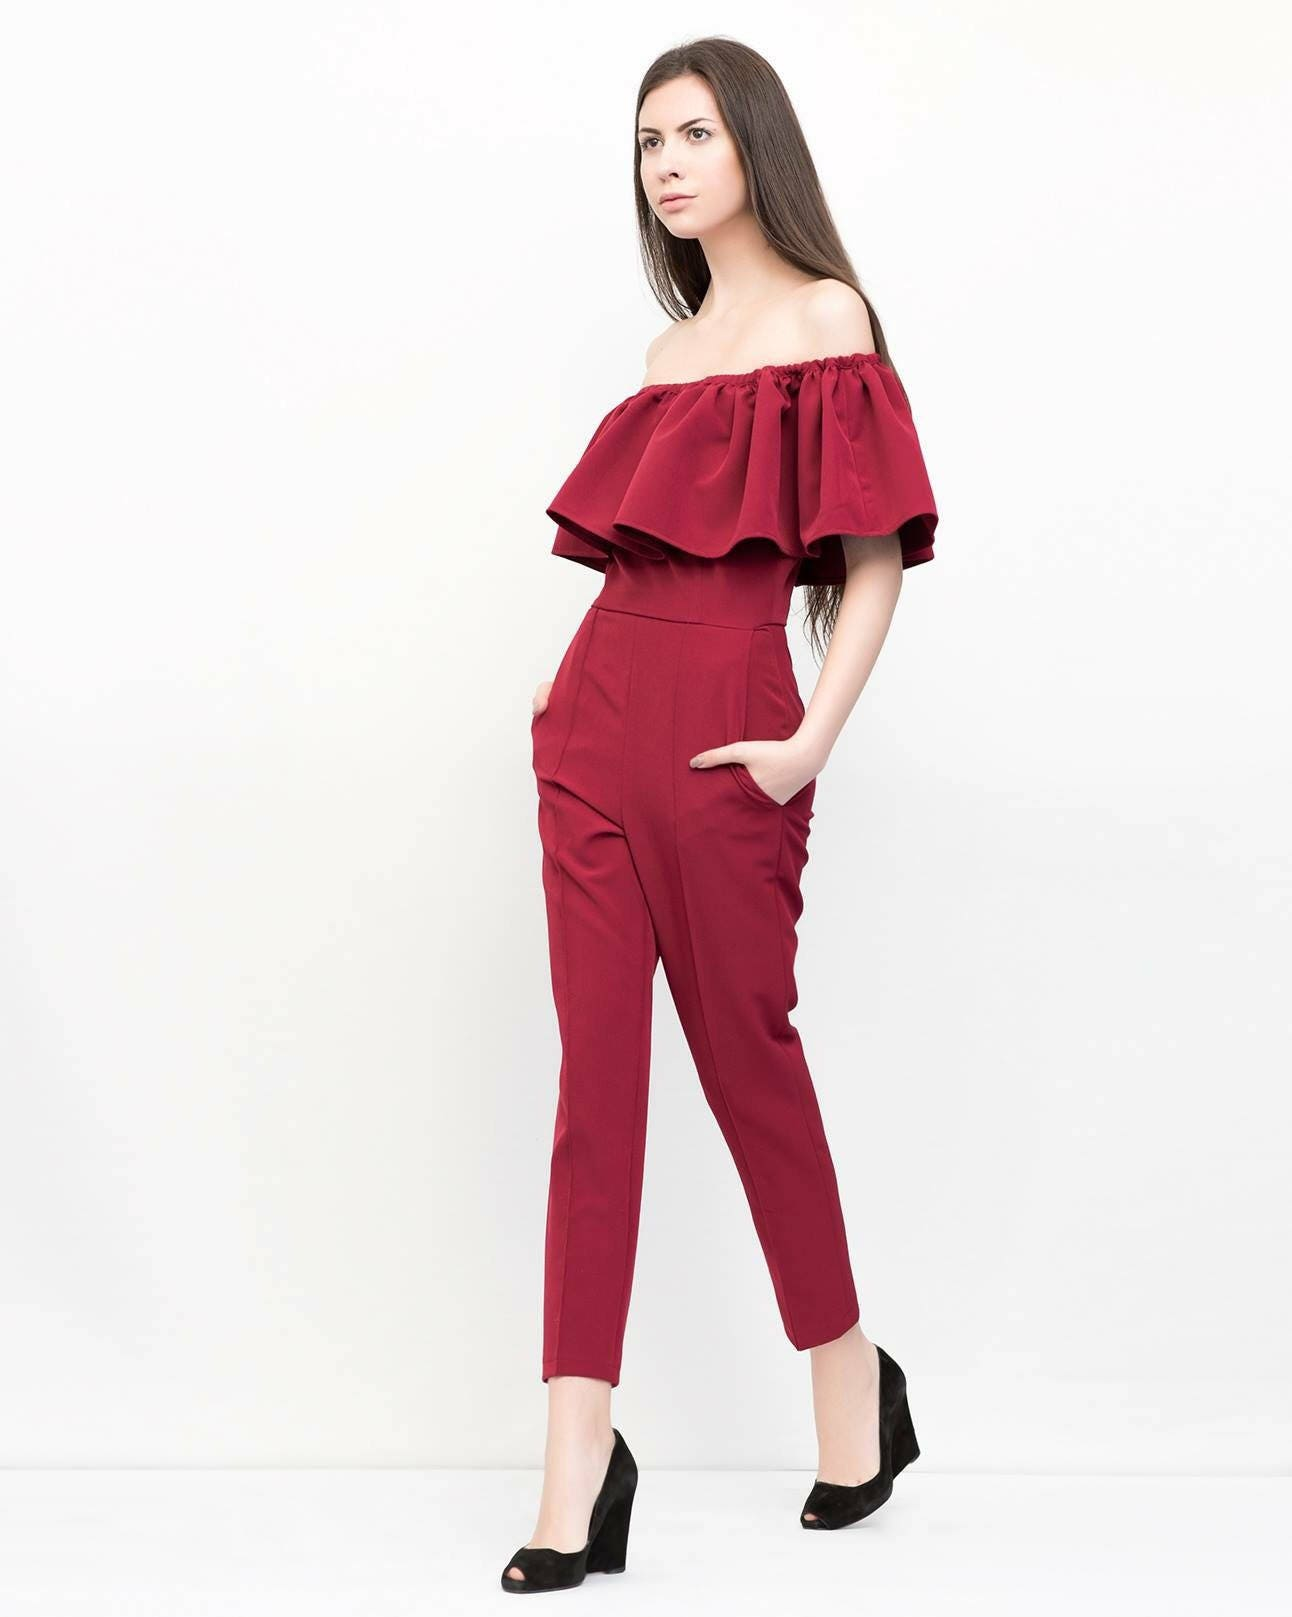 30332238cfd Burgundy ruffled jumpsuit. Stylish overall. Kuppers minimal